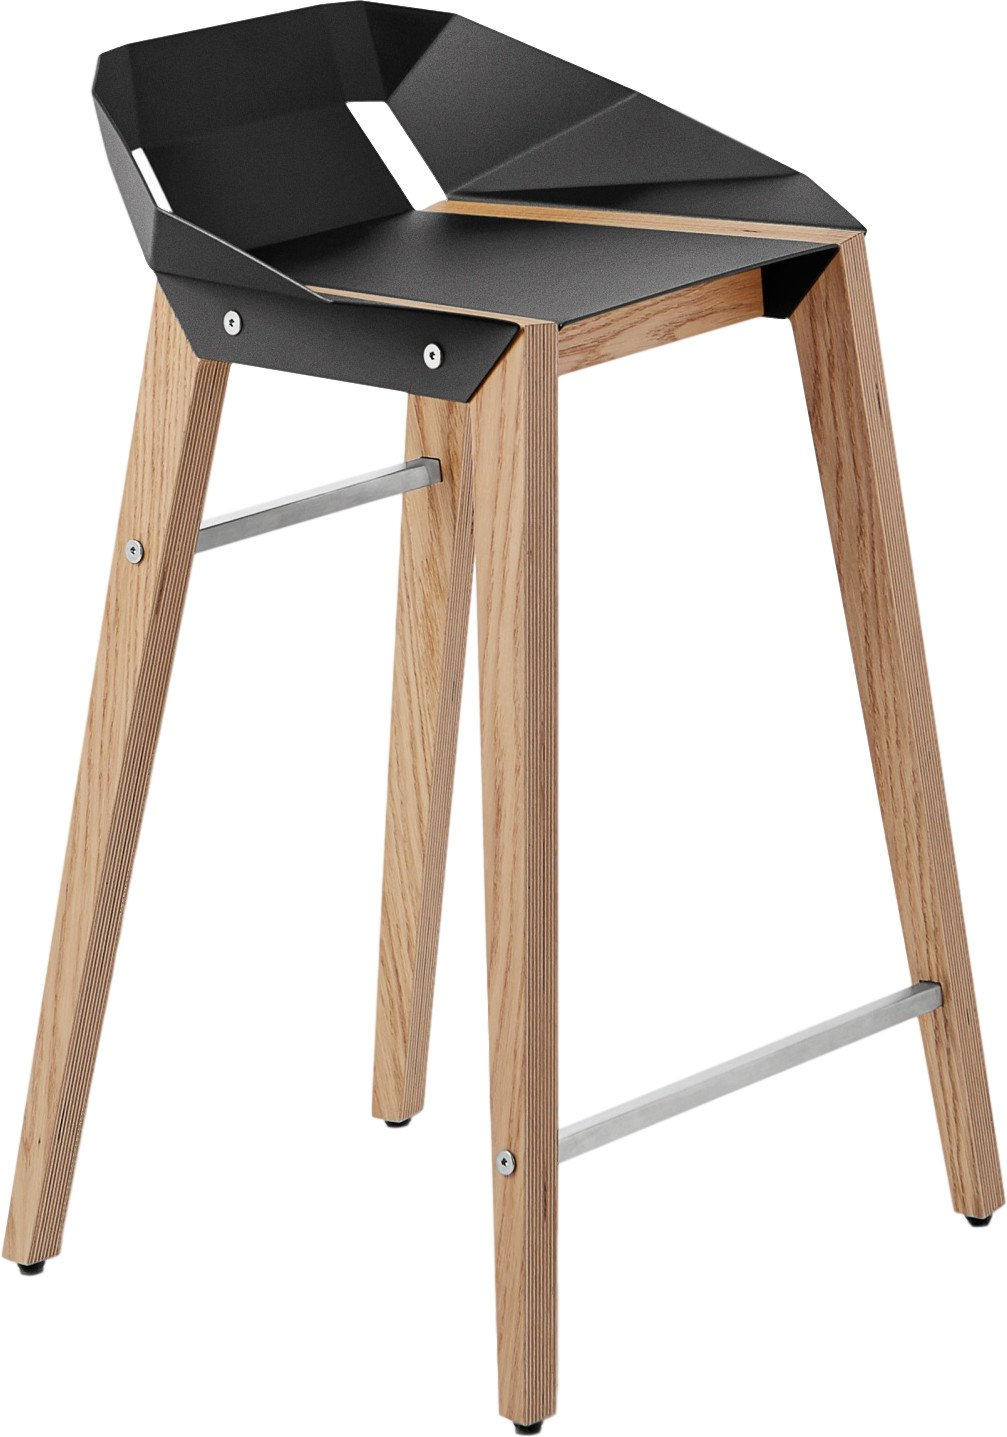 Diago Stool Low Black, Tabanda, Poland